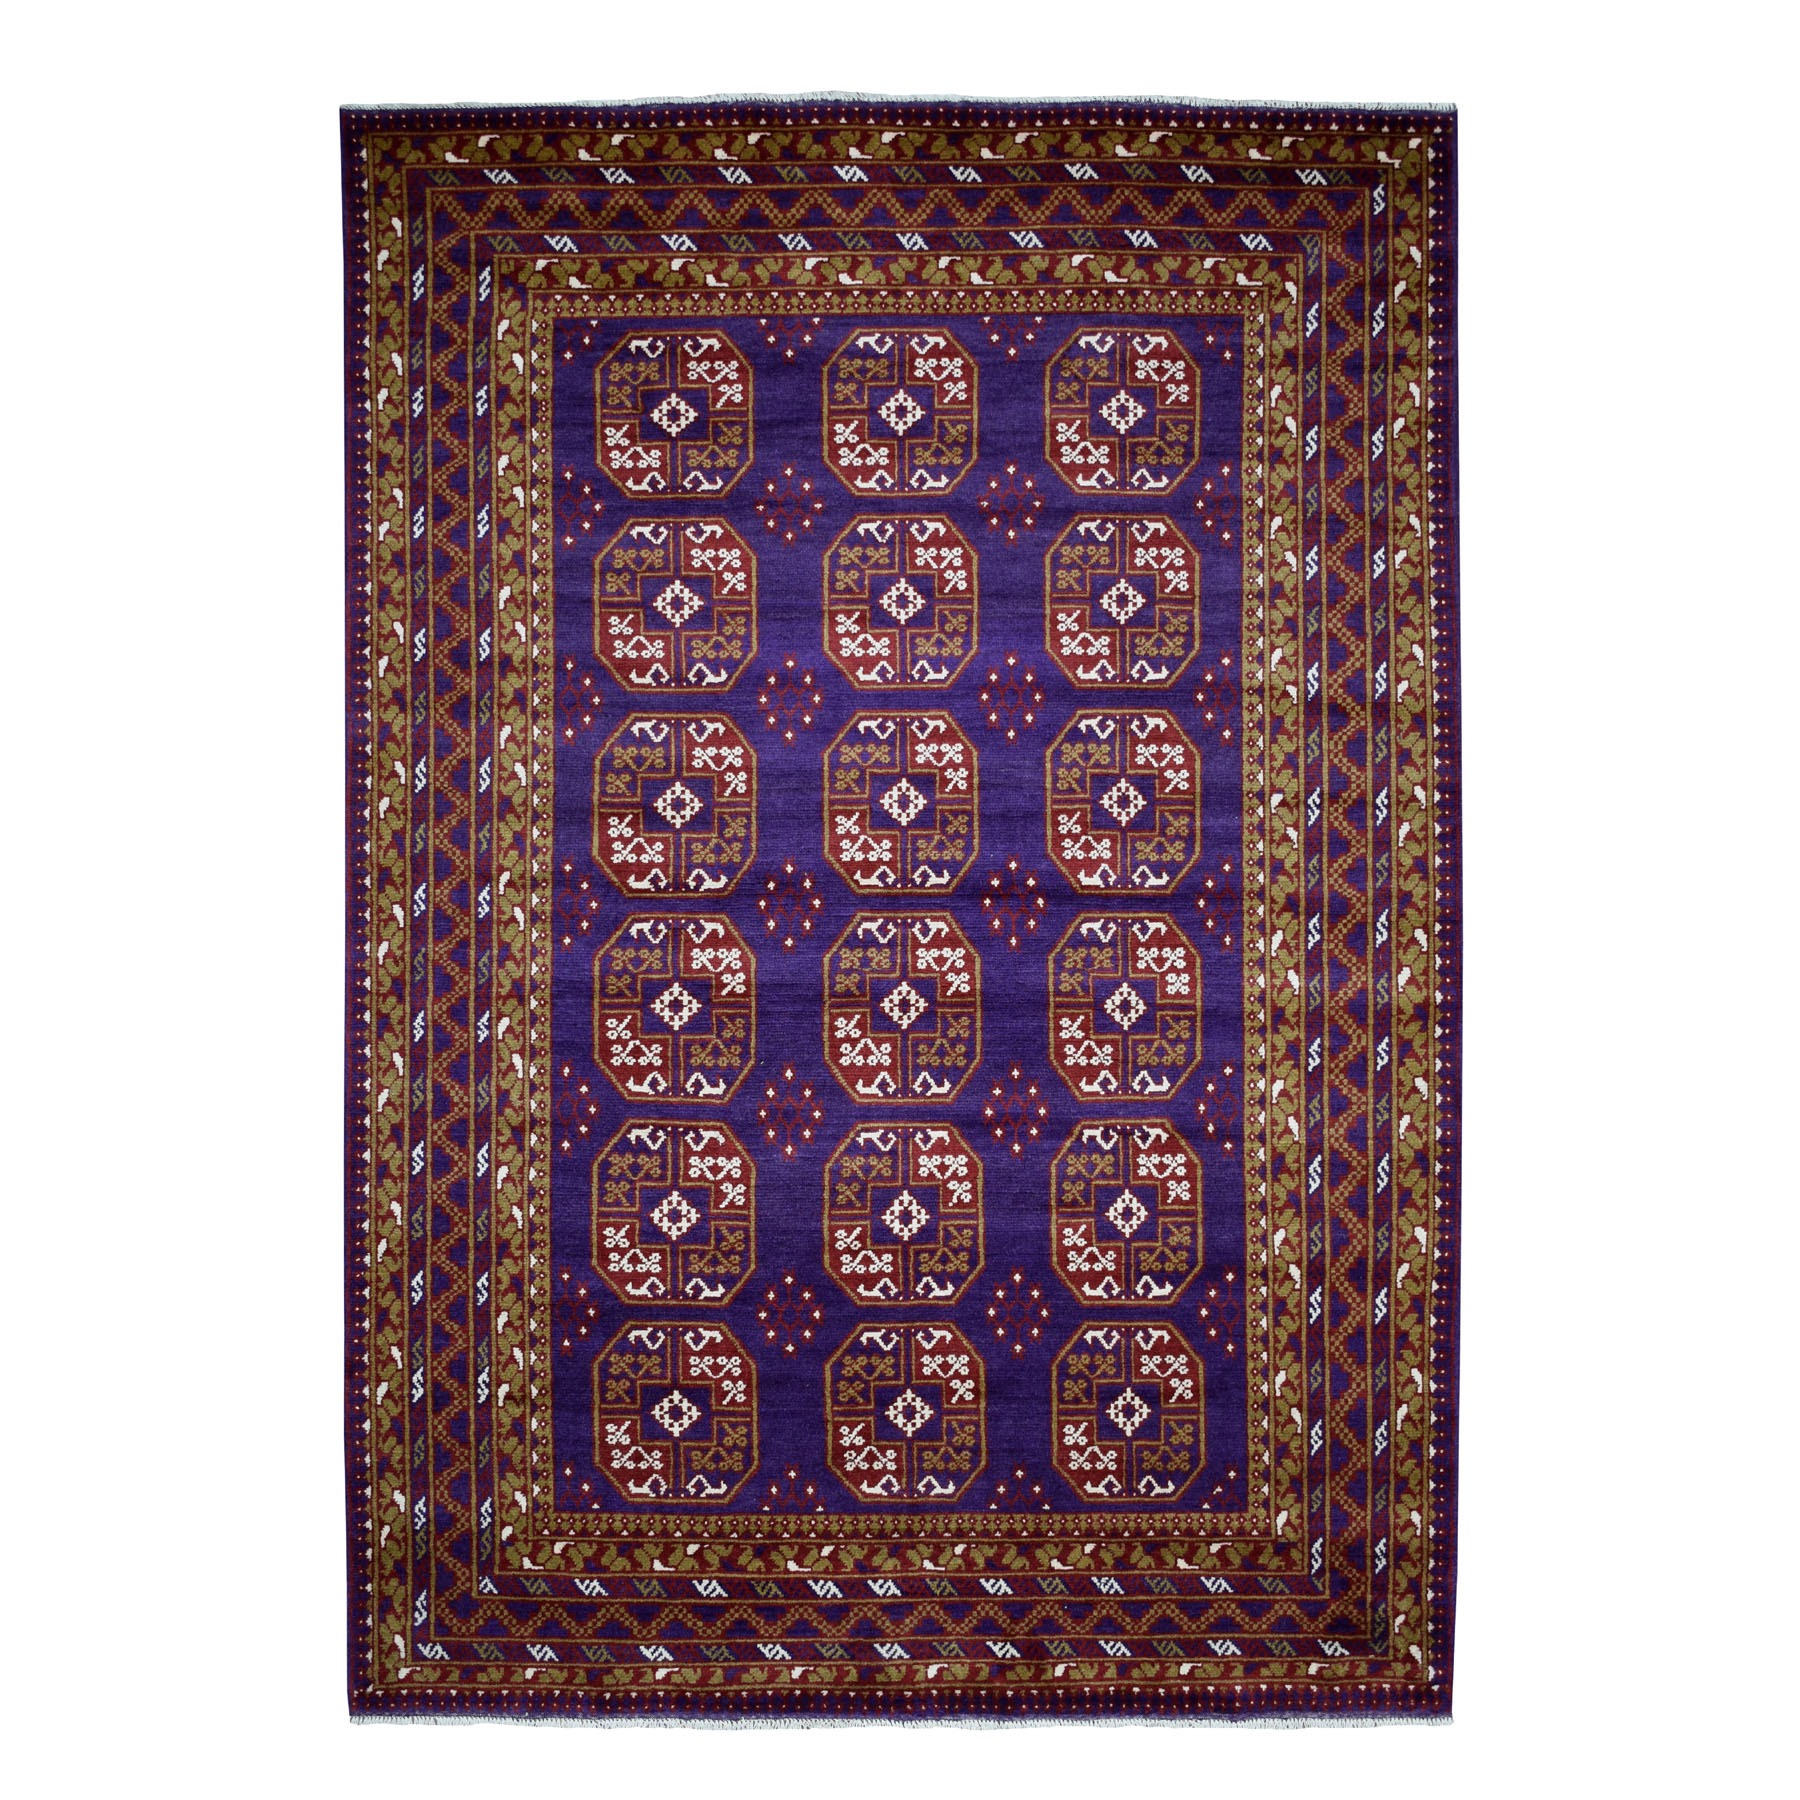 "6'8""x9'5"" Purple Elephant Feet Design Colorful Afghan Baluch Hand Woven Pure Wool Oriental Rug"